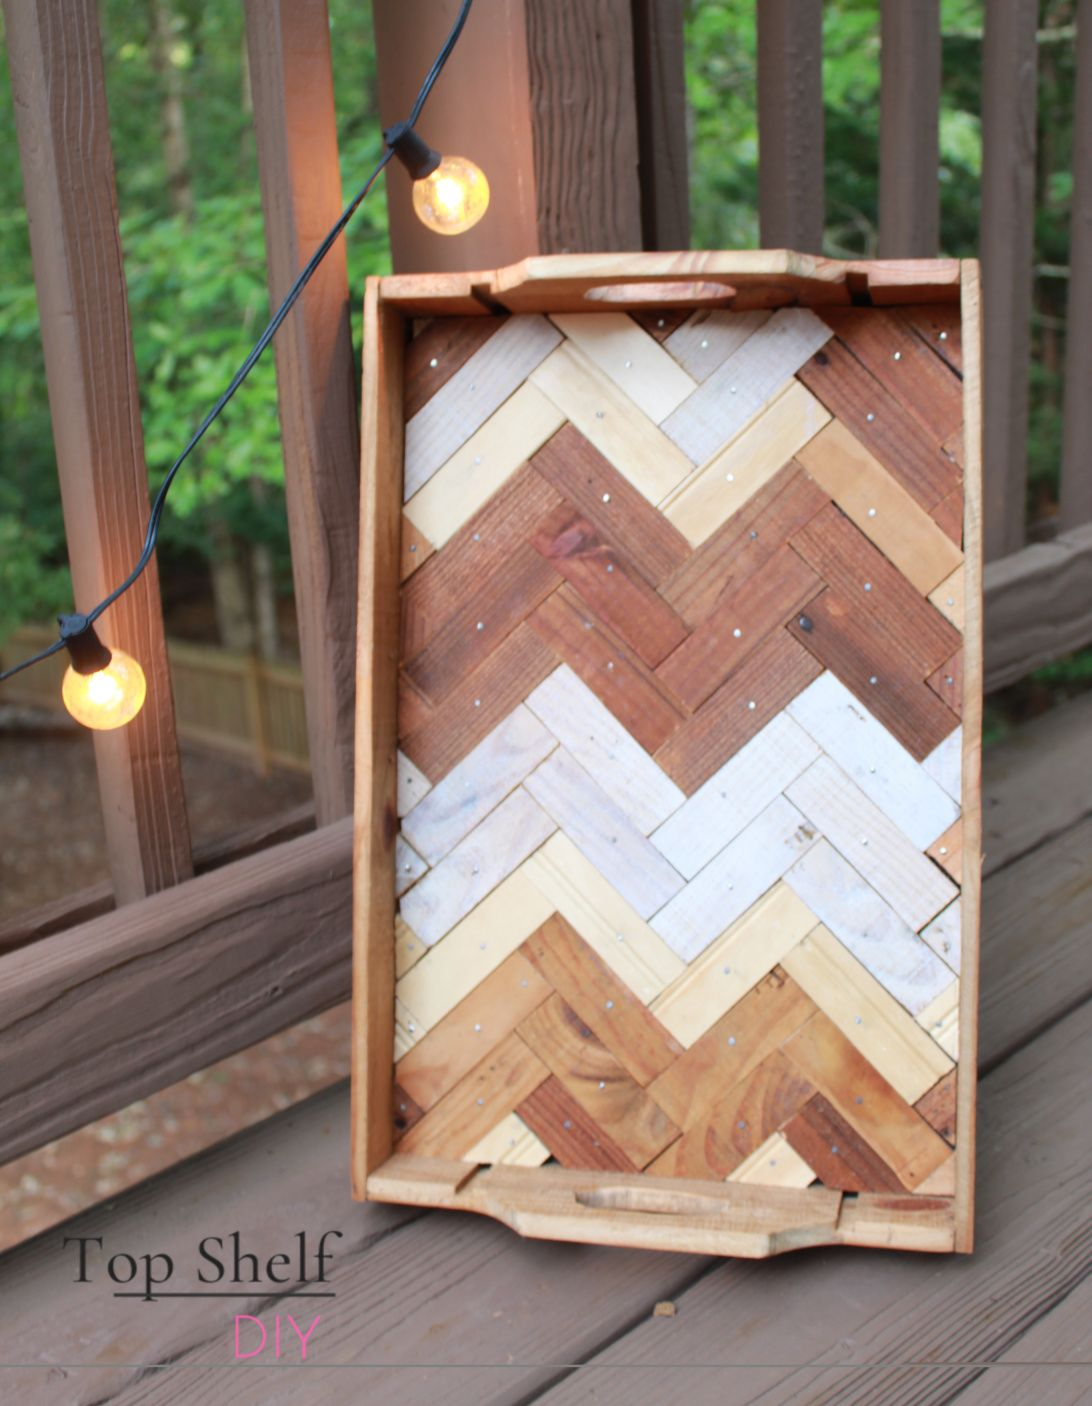 5 Beginner Wood Projects To Make For Others This Christmas Woodworking Projects That In 2020 Wood Projects For Beginners Woodworking Plans Patterns Christmas Diy Wood